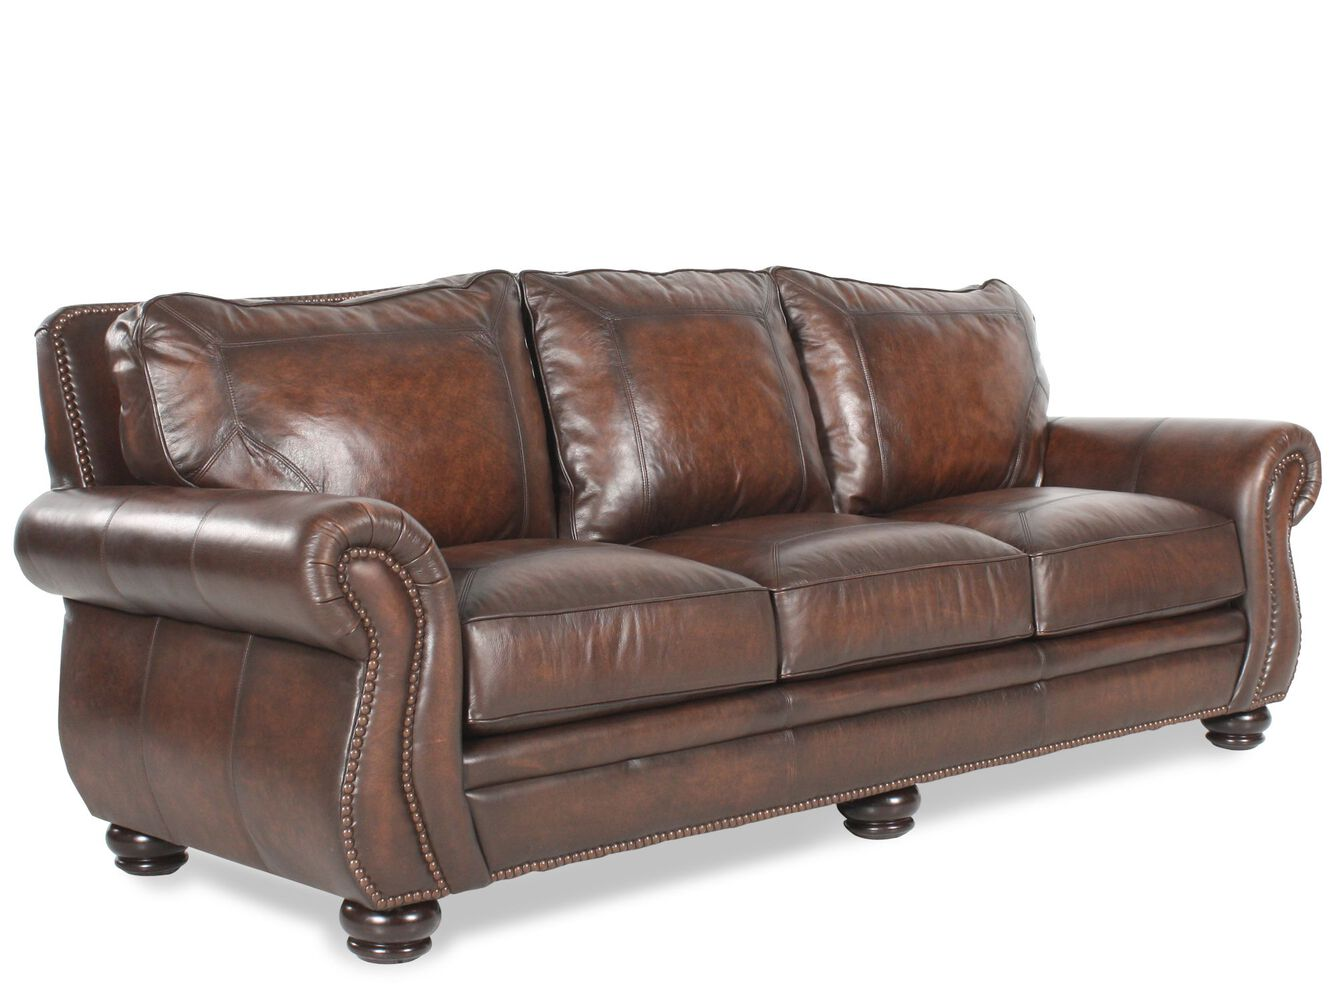 Bernhardt Breckenridge Sofa Hemispheres Furniture